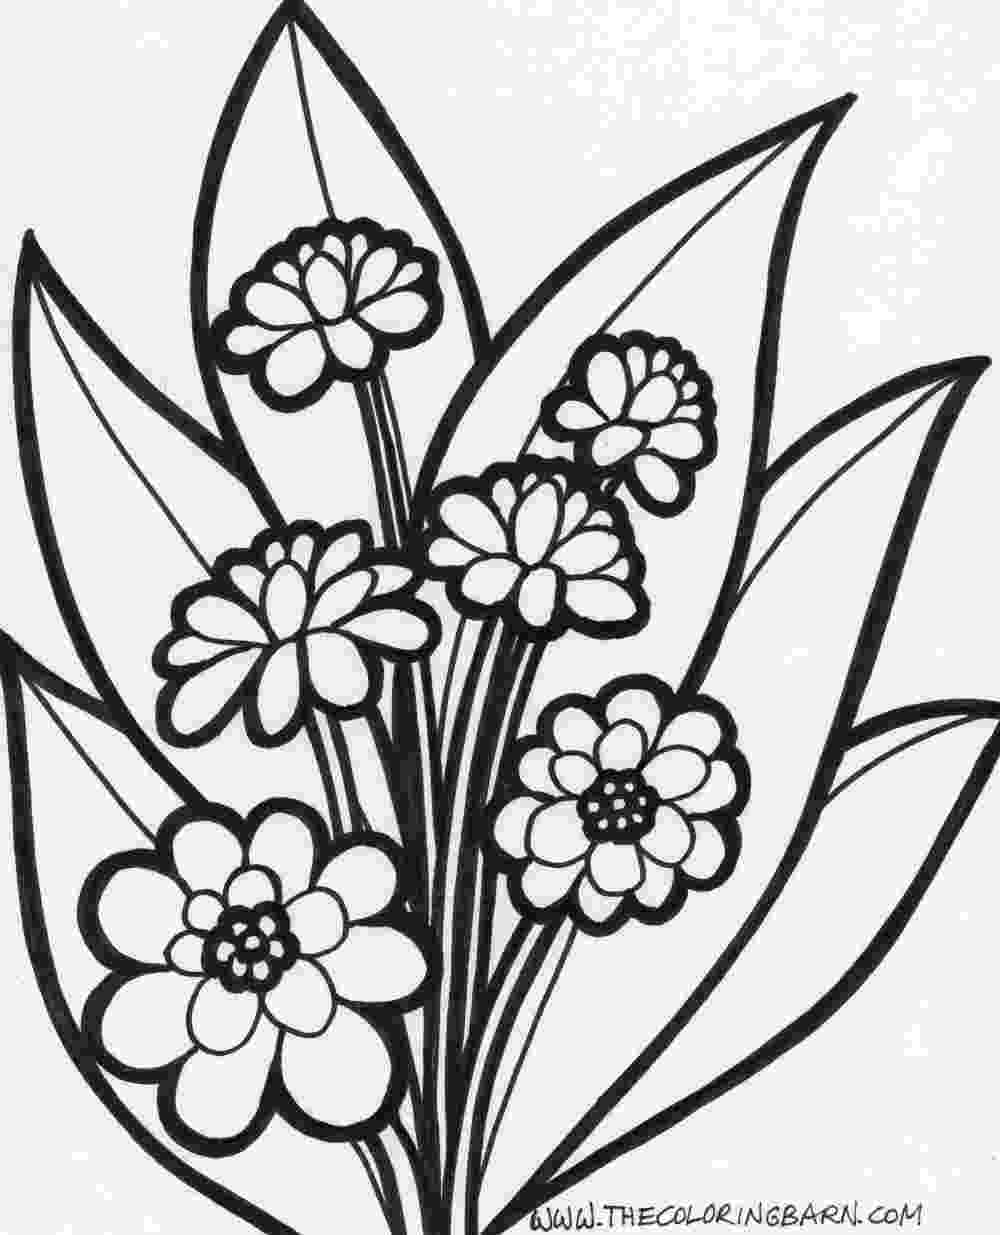 ag coloring pages ag doll coloring pages coloring pages ag coloring pages